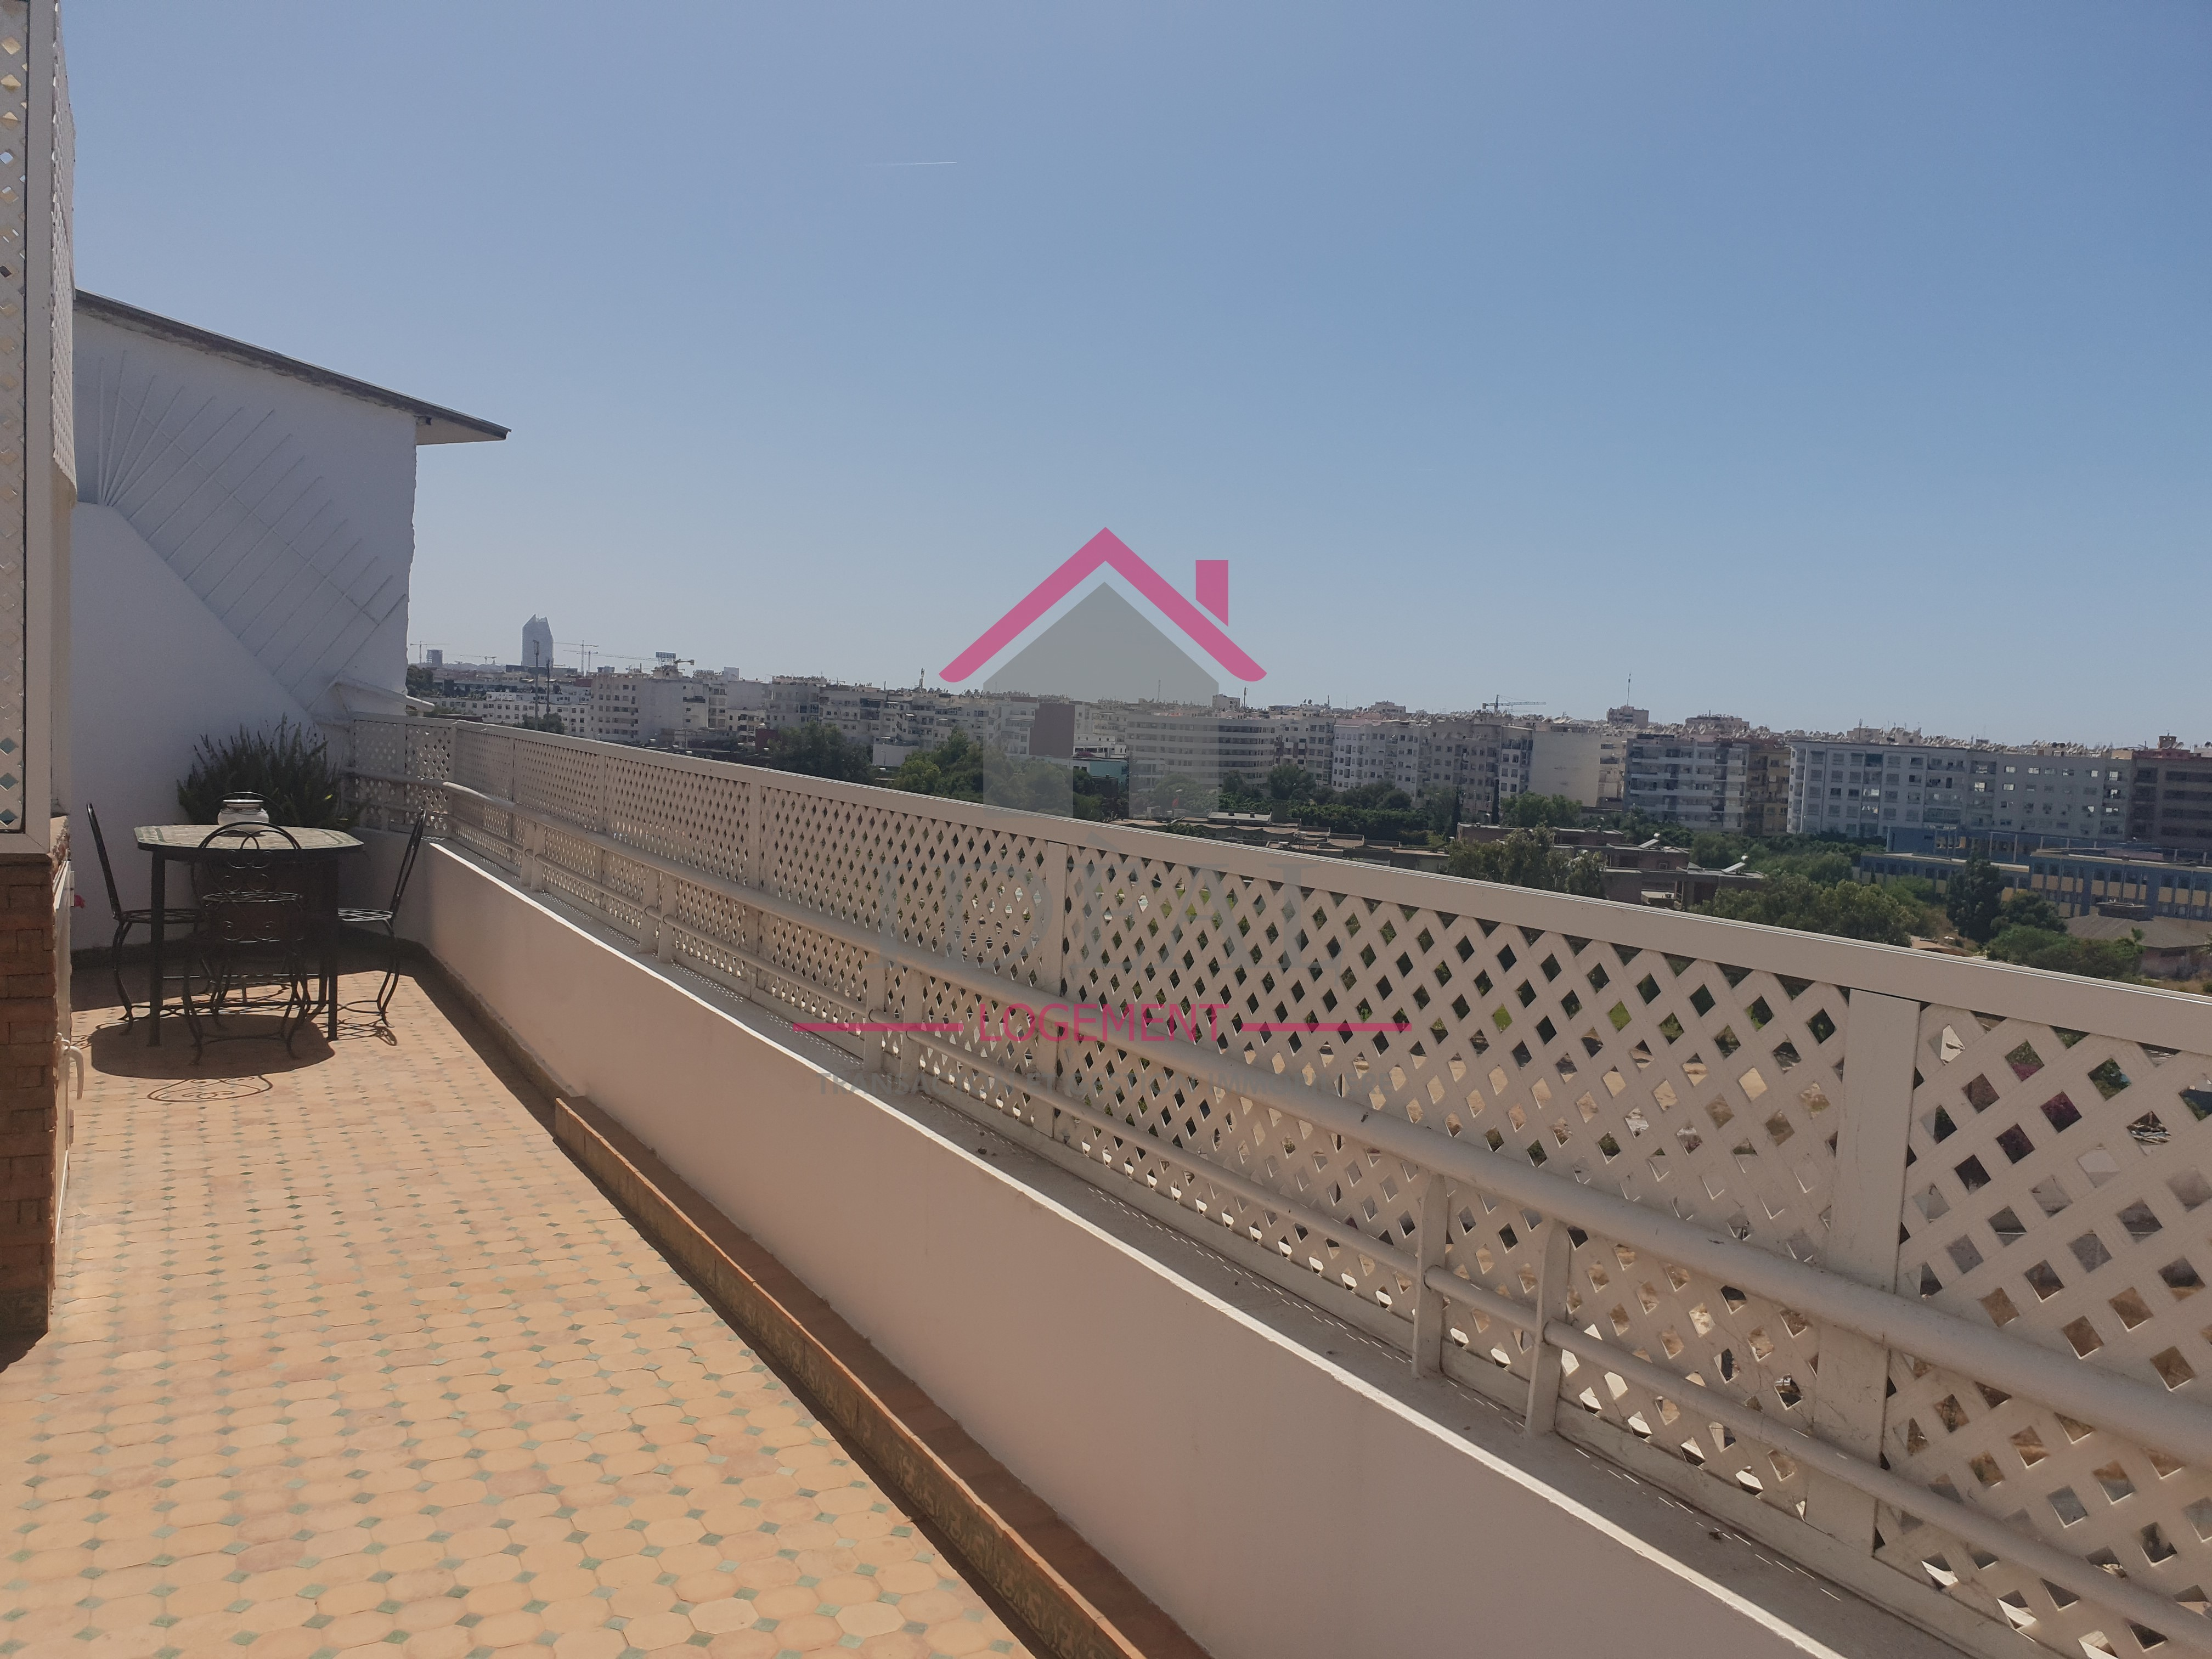 Vente <strong>Appartement</strong> Casablanca Maarif Extension <strong>172 m2</strong>